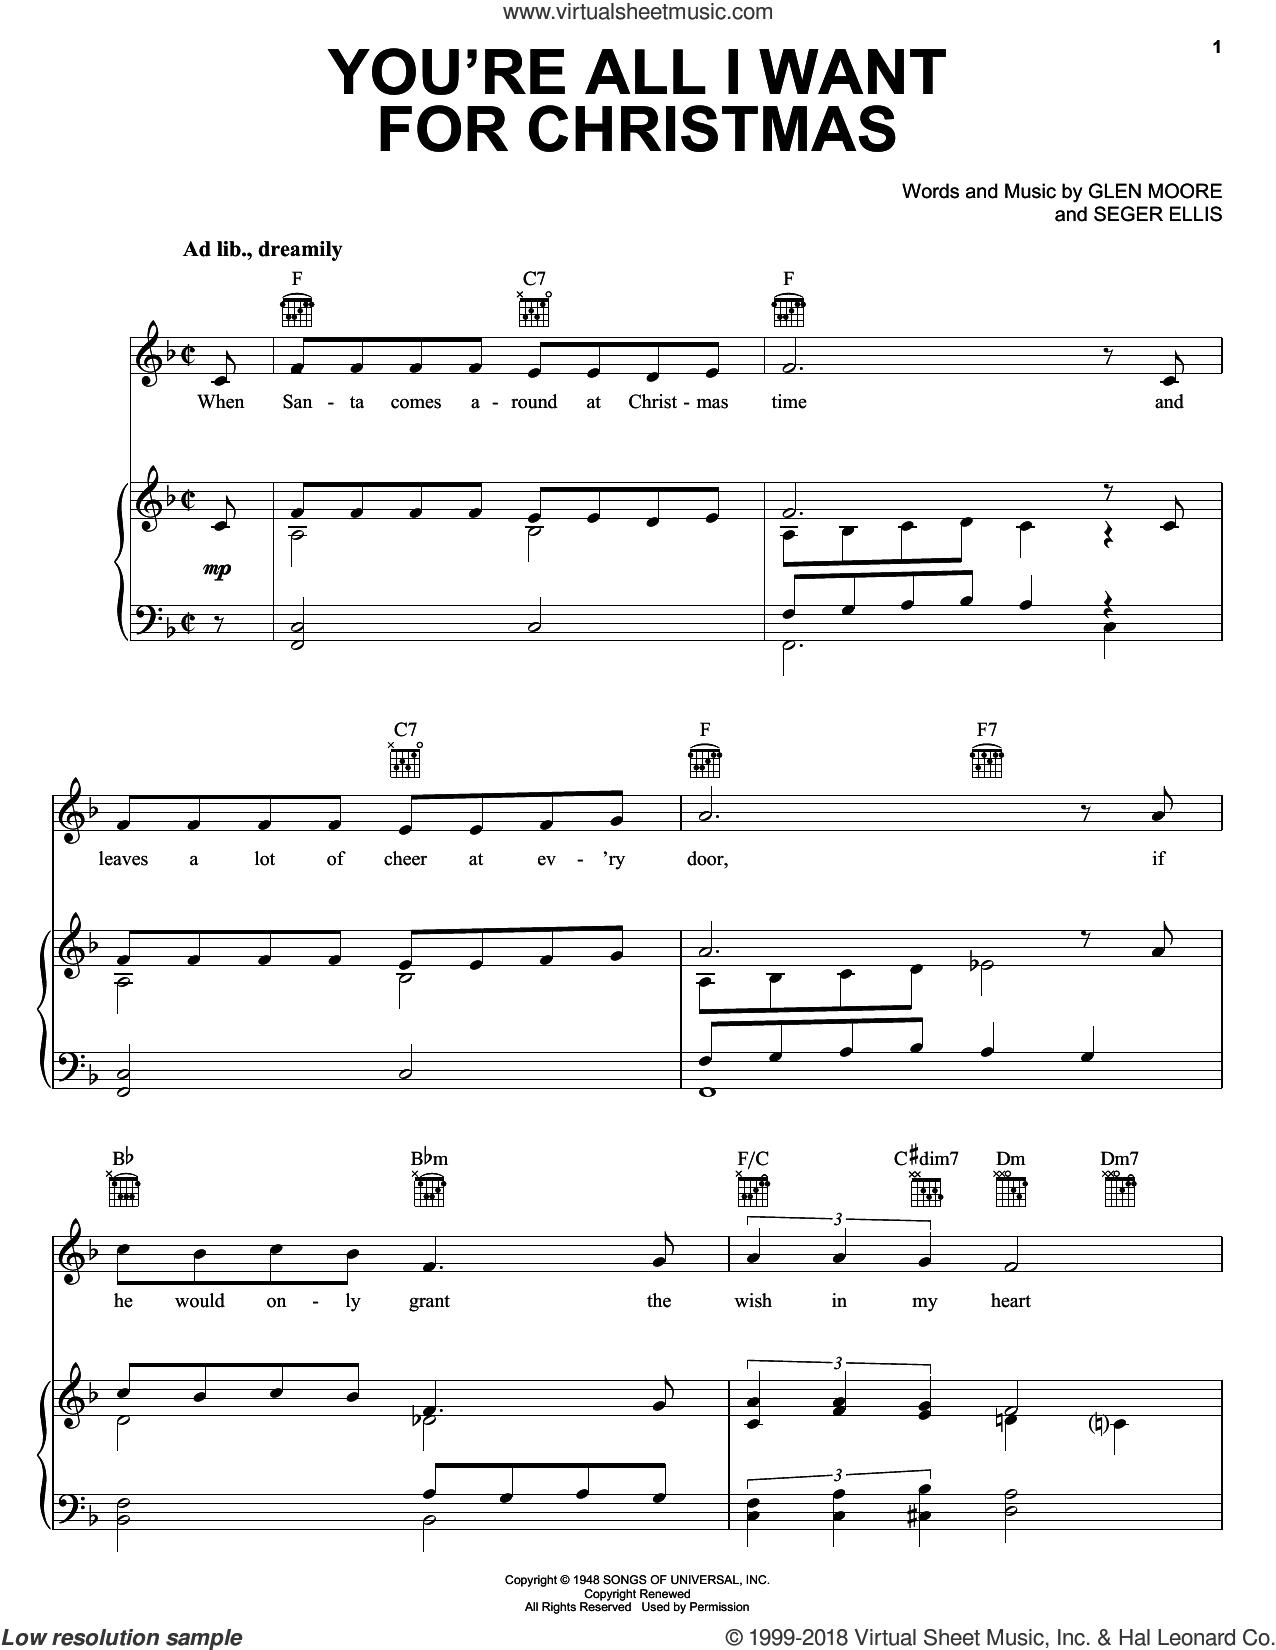 You're All I Want For Christmas sheet music for voice, piano or guitar by Seger Ellis